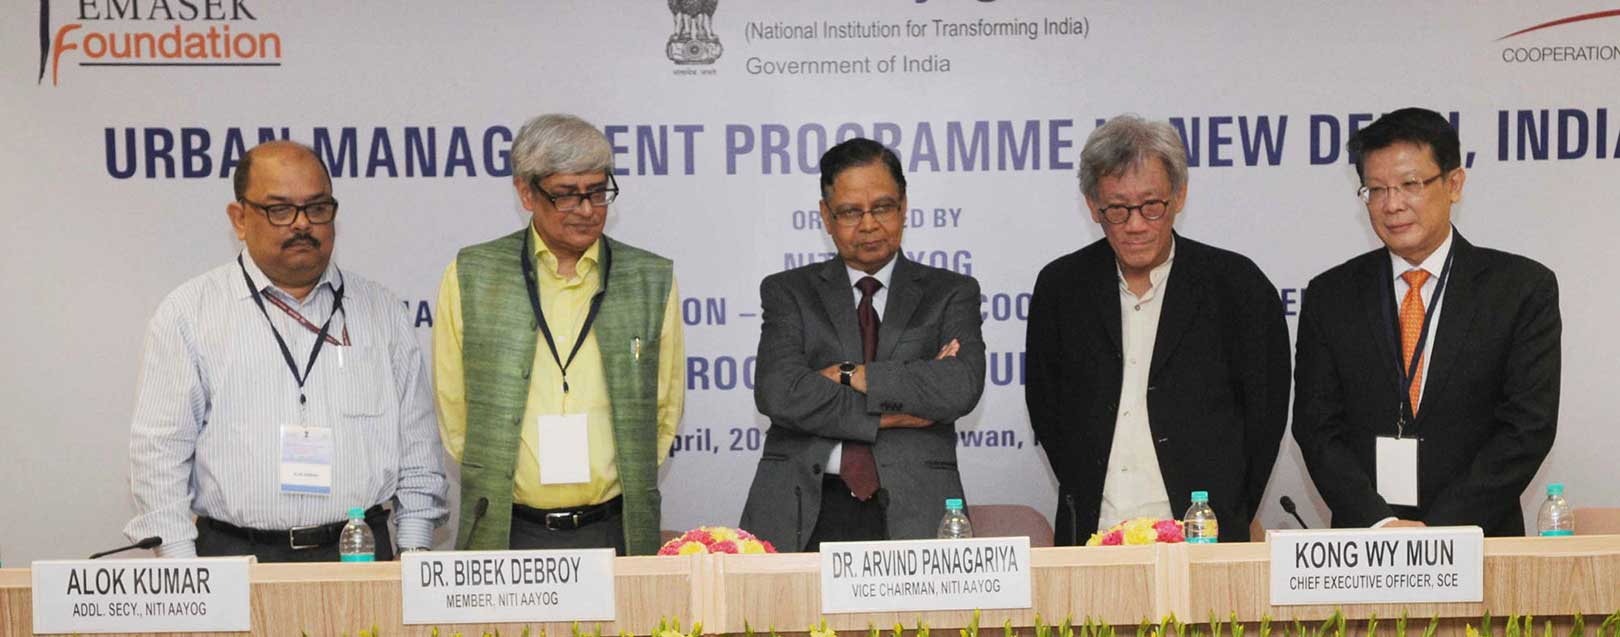 NITI Aayog-SCE launches urban management programme